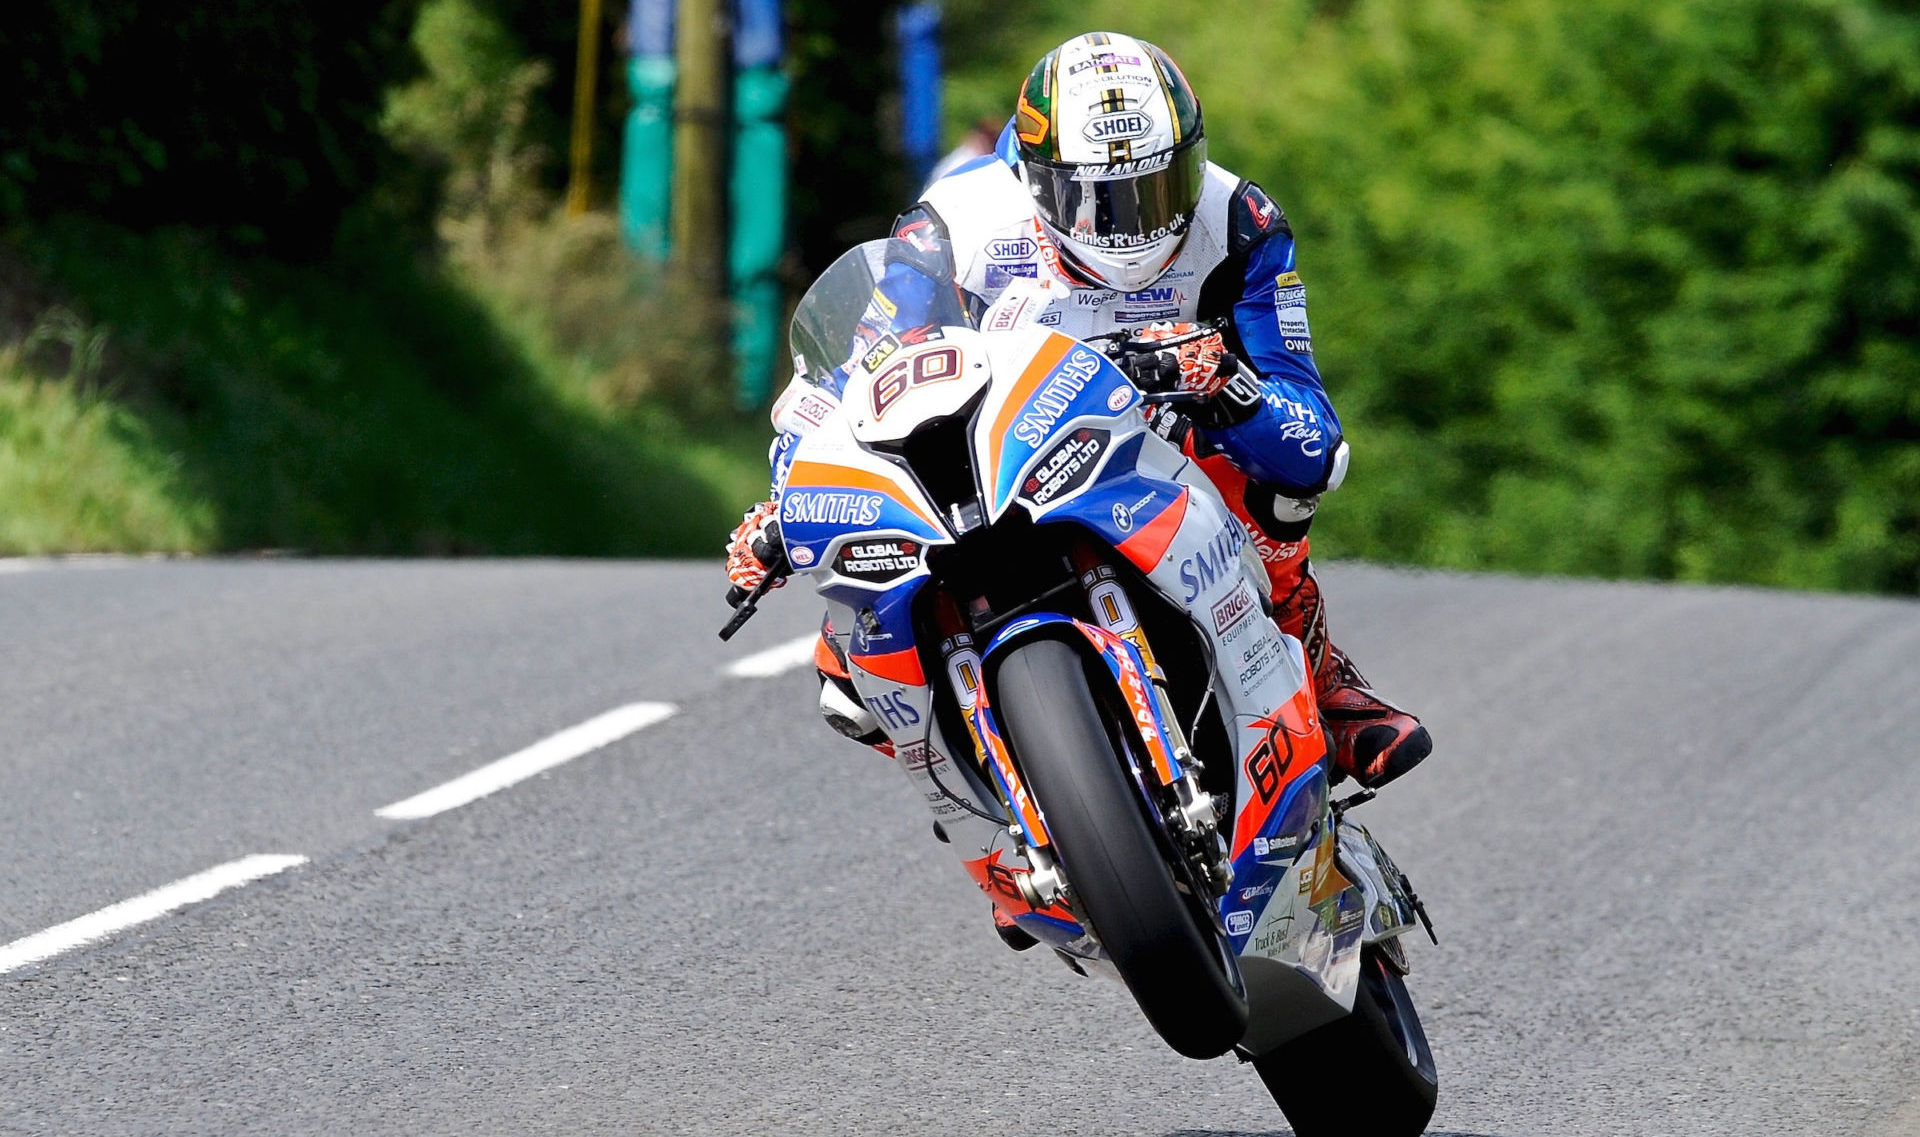 Peter Hickman (60). Photo by Pacemaker Press International, courtesy of the Ulster Grand Prix.